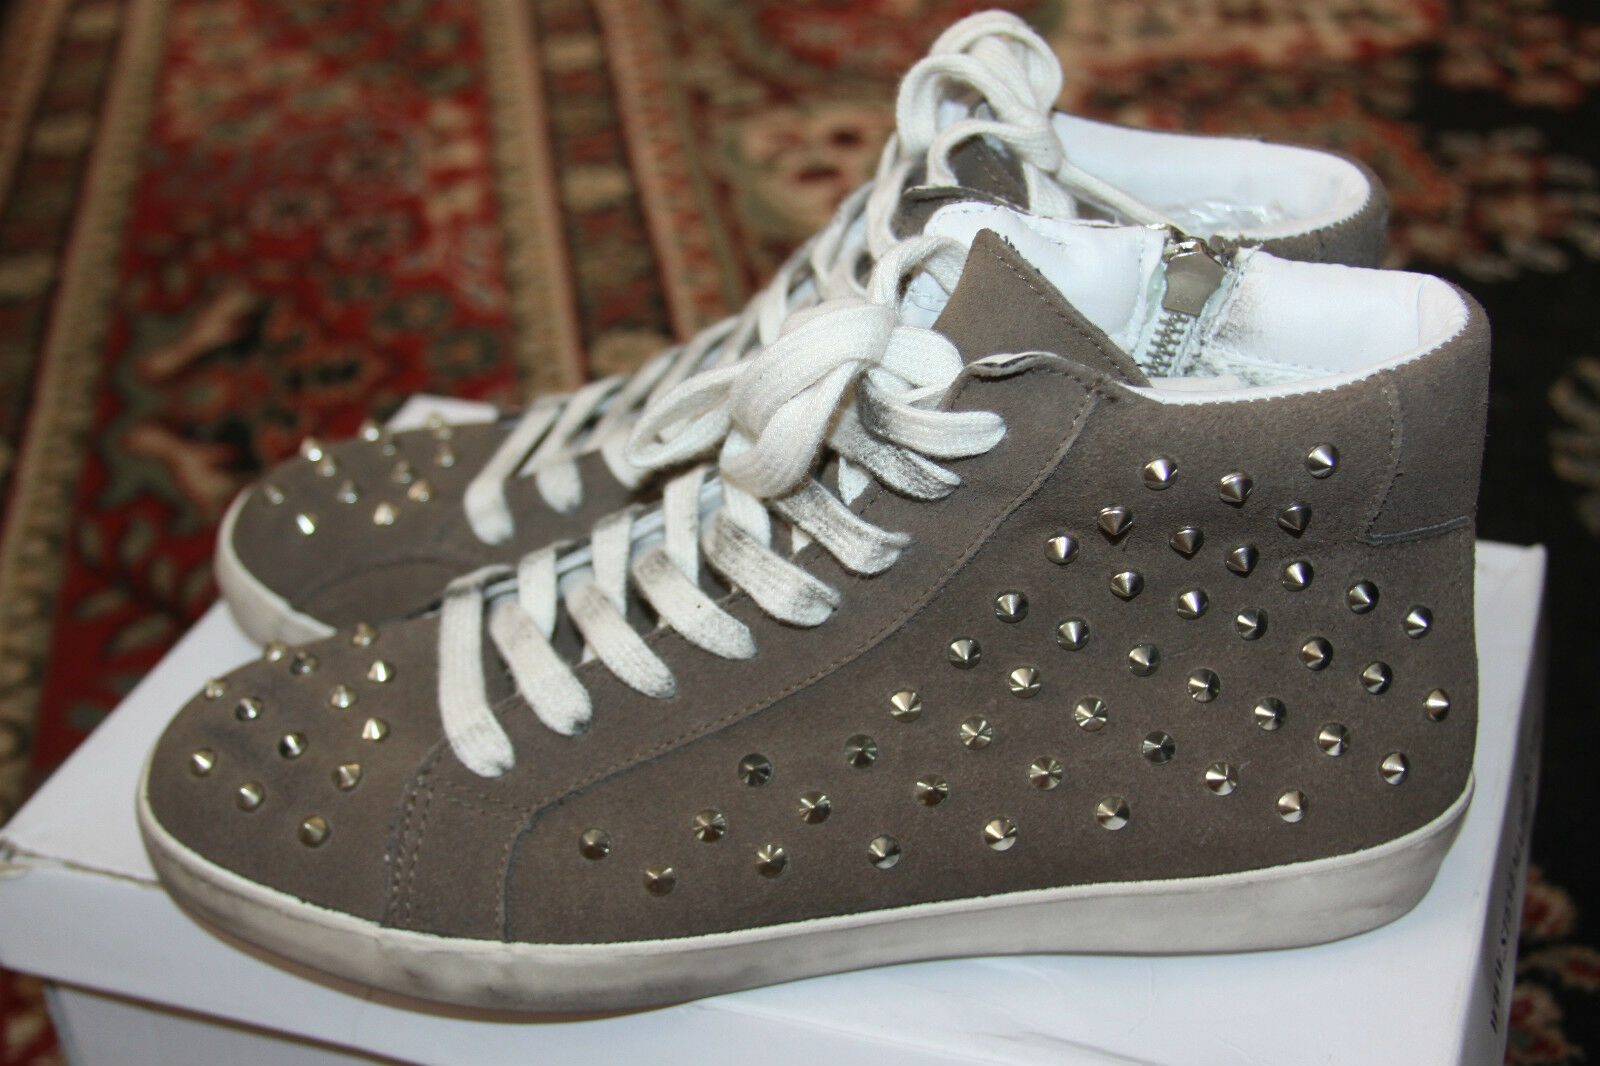 STEVE MADDEN TWYNKLE TAUPE SUEDE SUEDE TAUPE SNEAKER SIZE 9M 899596